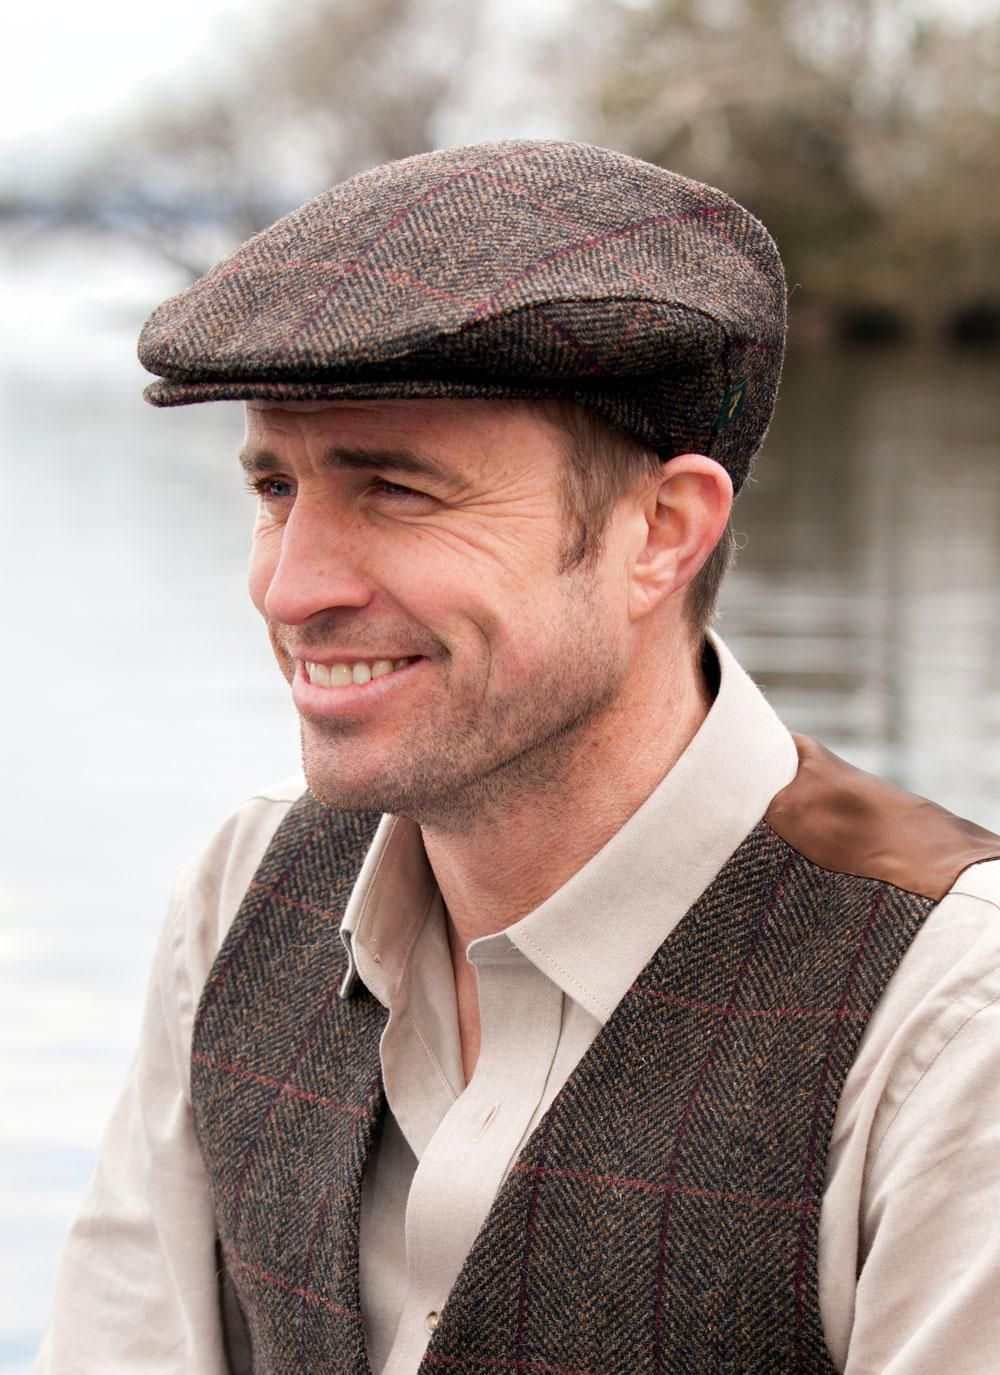 76fd5684728 Wool Trinity Cap in Brown Check  These beautiful 100% wool Irish Flat Caps  are classic yet smart